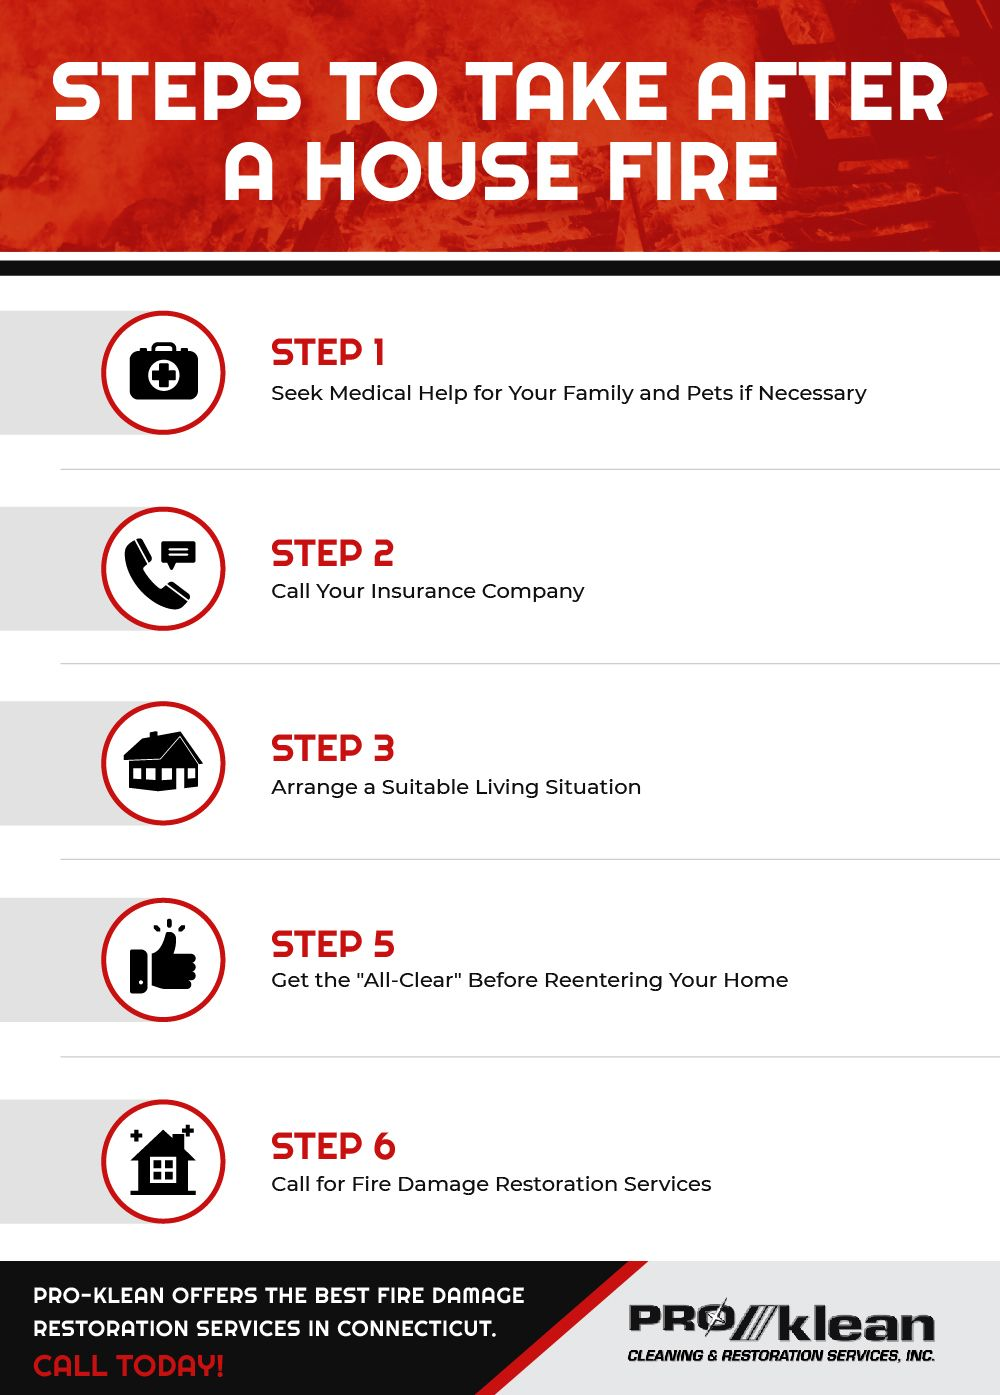 Steps to Take After a House Fire.jpg